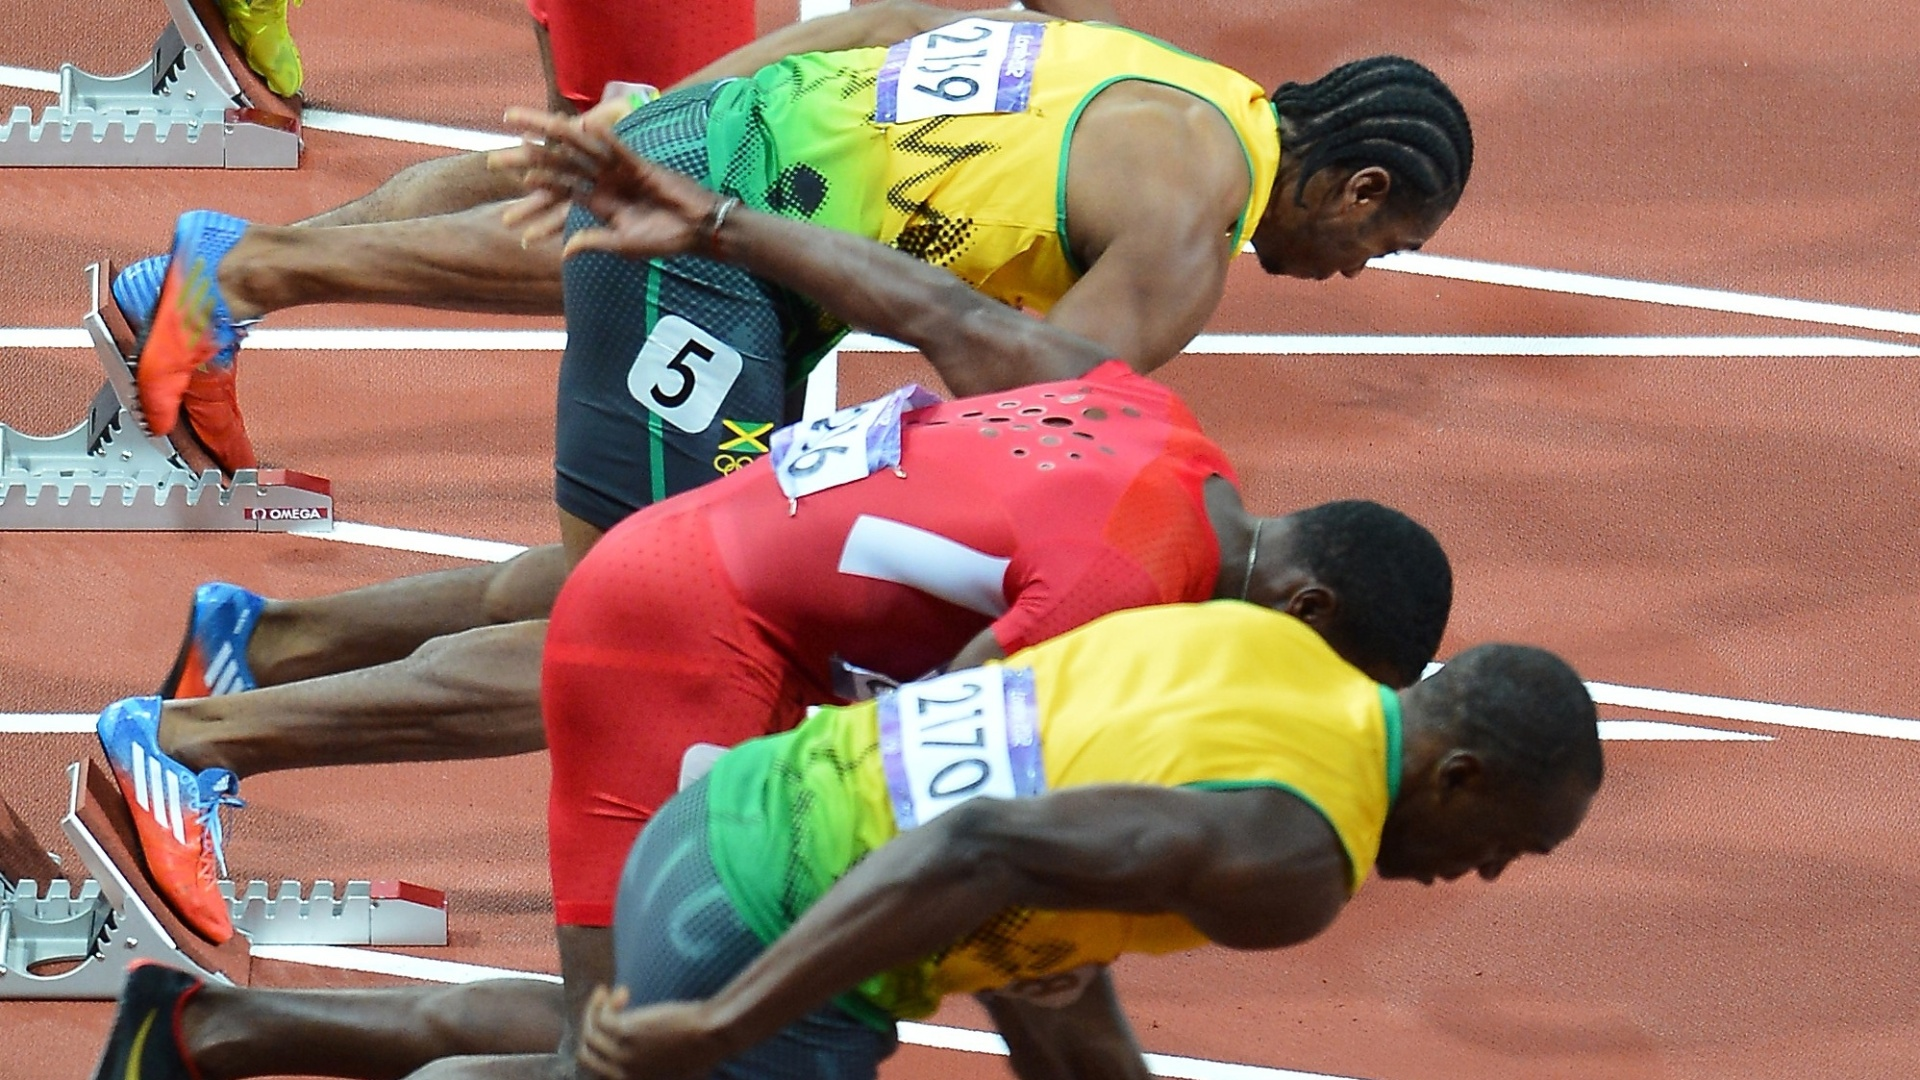 De baixo para cima, favoritos Usain Bolt, Justin Gatlin e Yohan Blake largam na final olmpica dos 100 m rasos